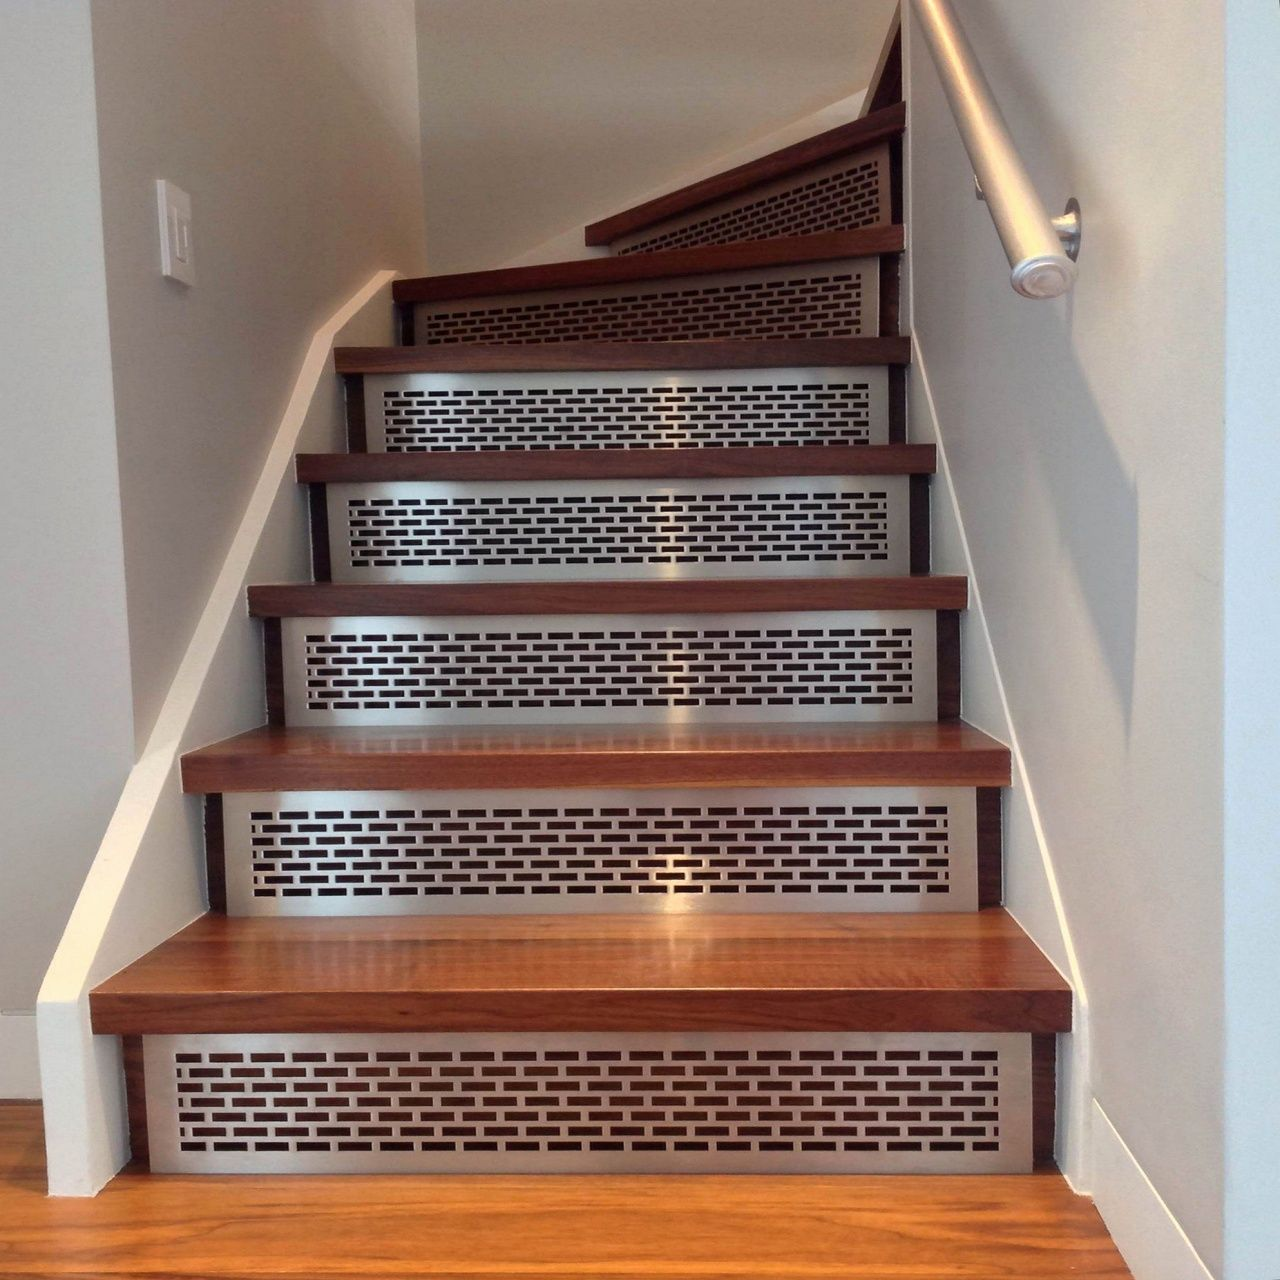 Best Stair Treads And Risers Calculator In 2020 Wood Stair 400 x 300